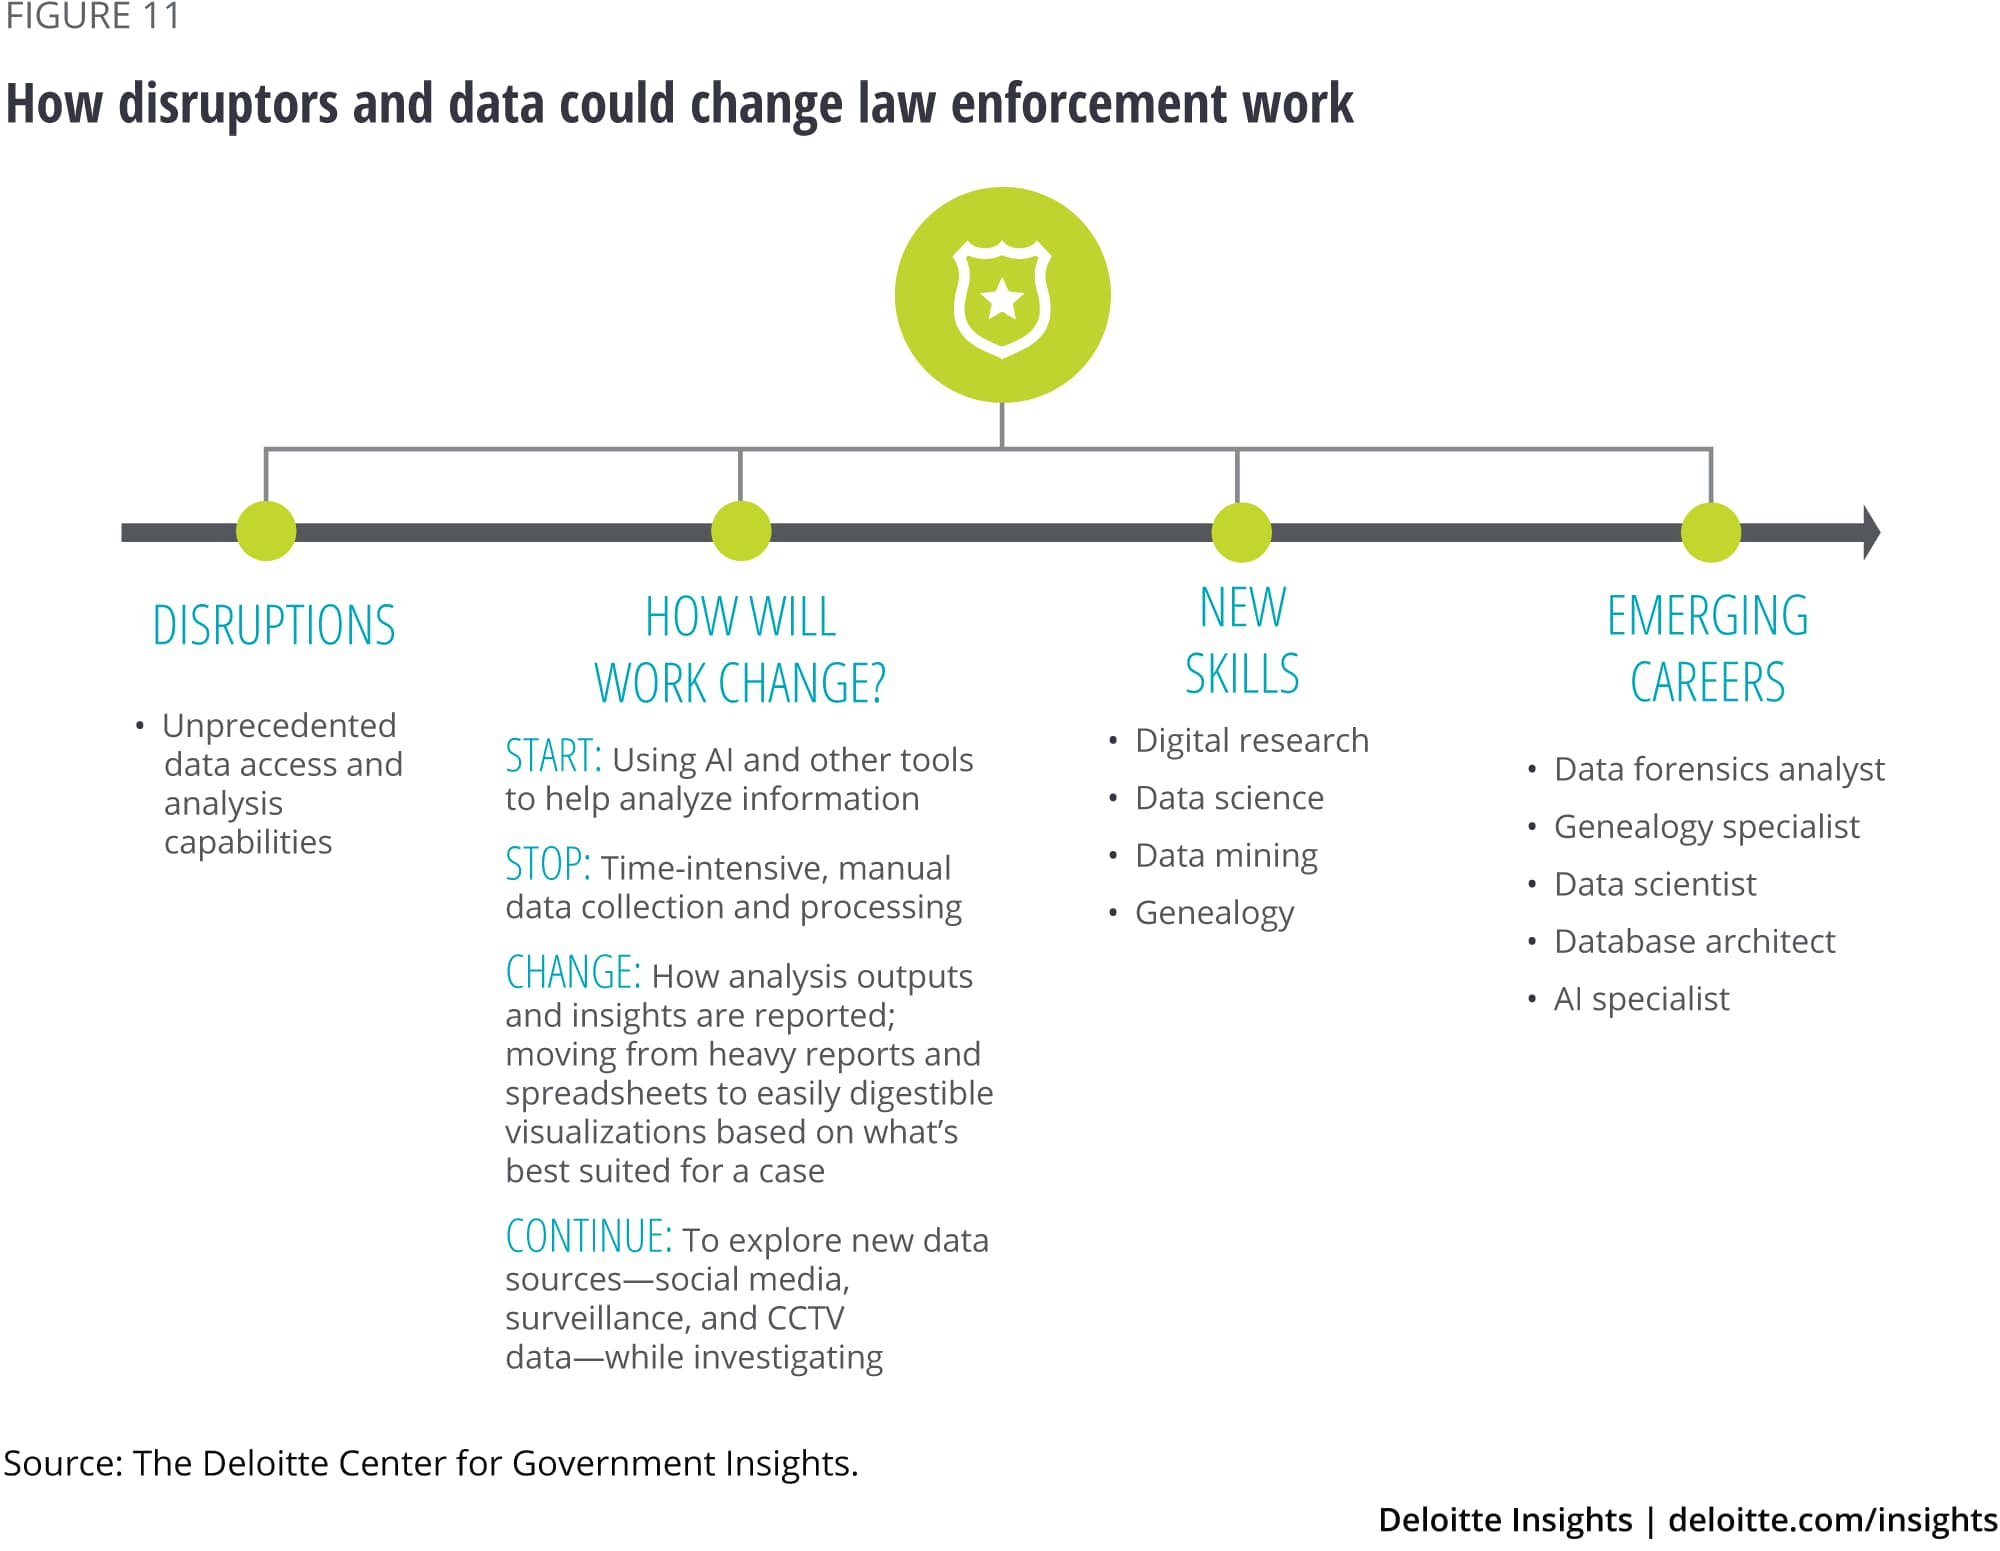 How disruptors and data could change law enforcement work